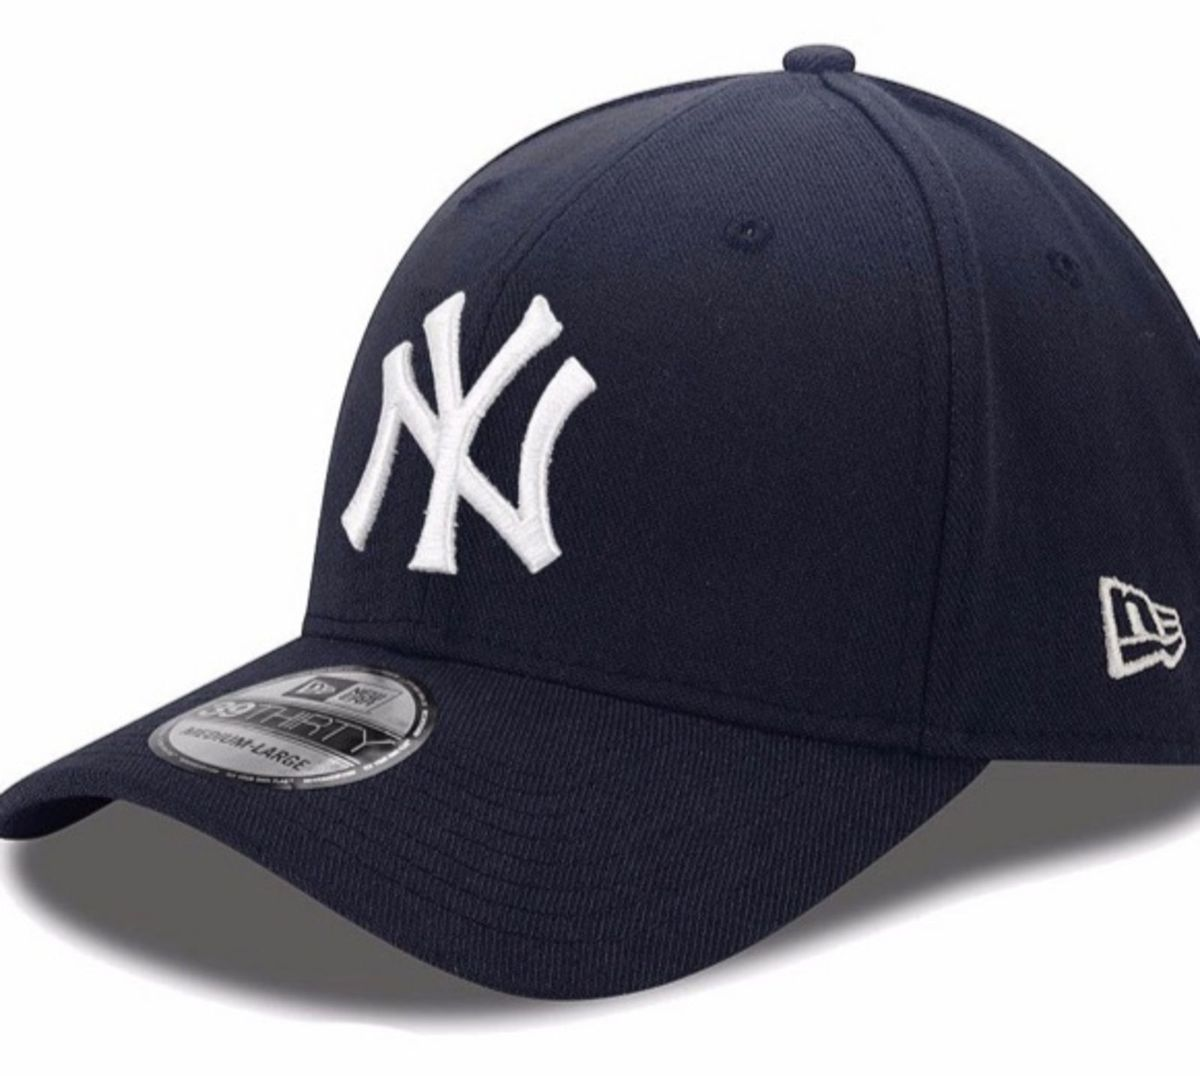 152781c5c1211 boné new era new york yankees azul marinho - bonés new-era